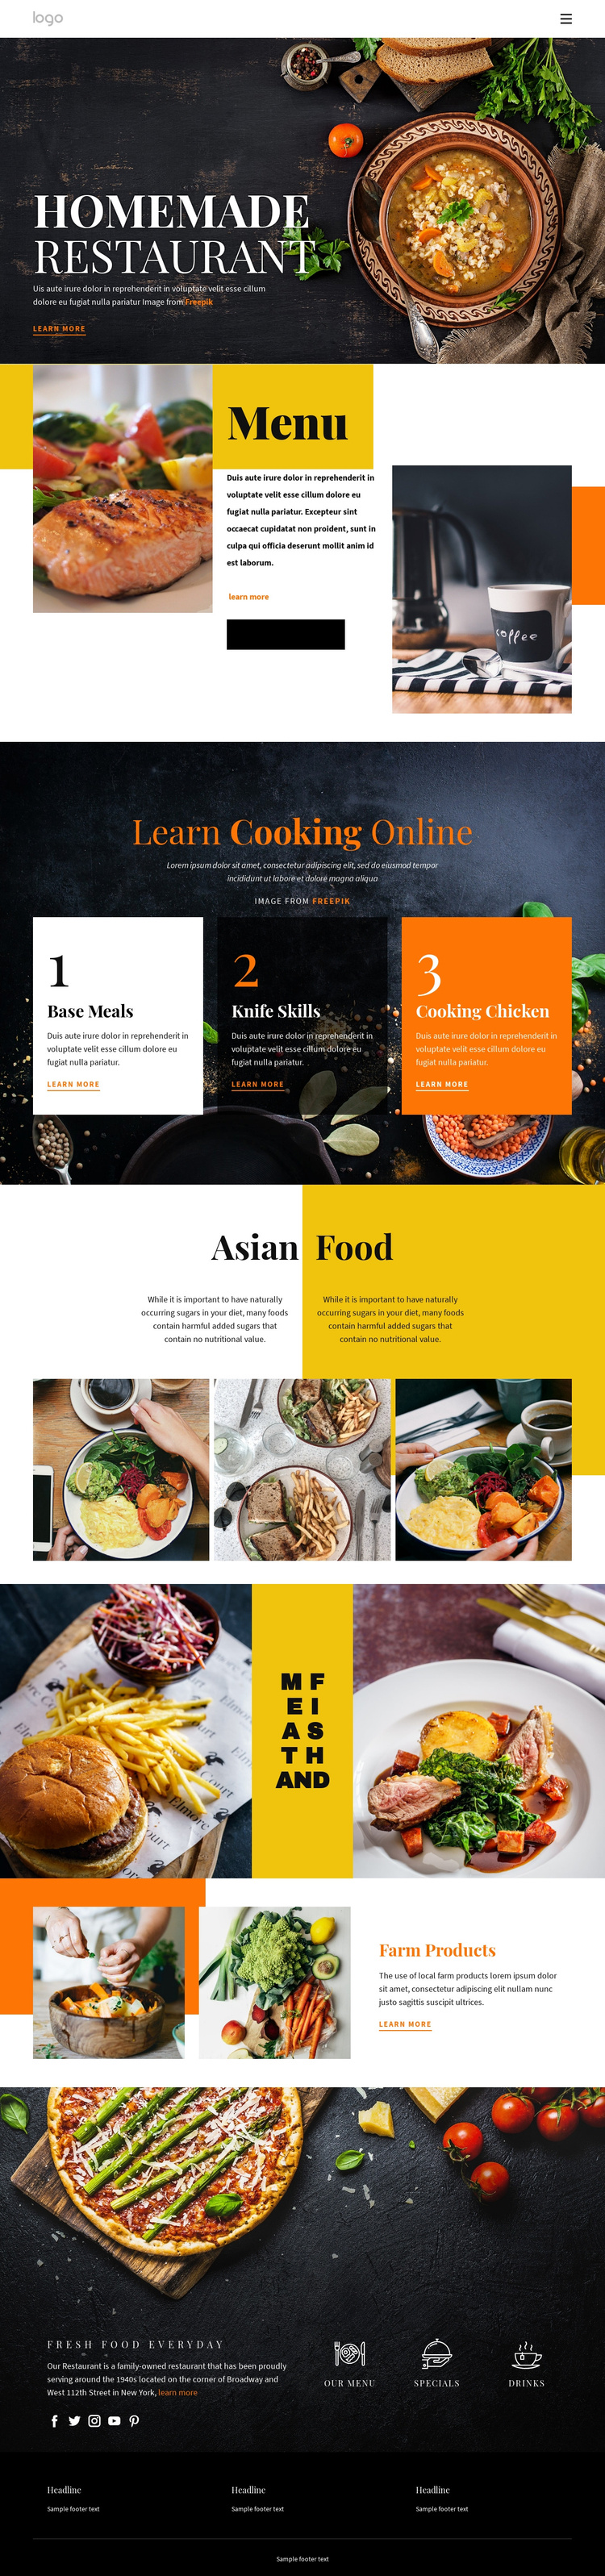 Better than home food Joomla Template